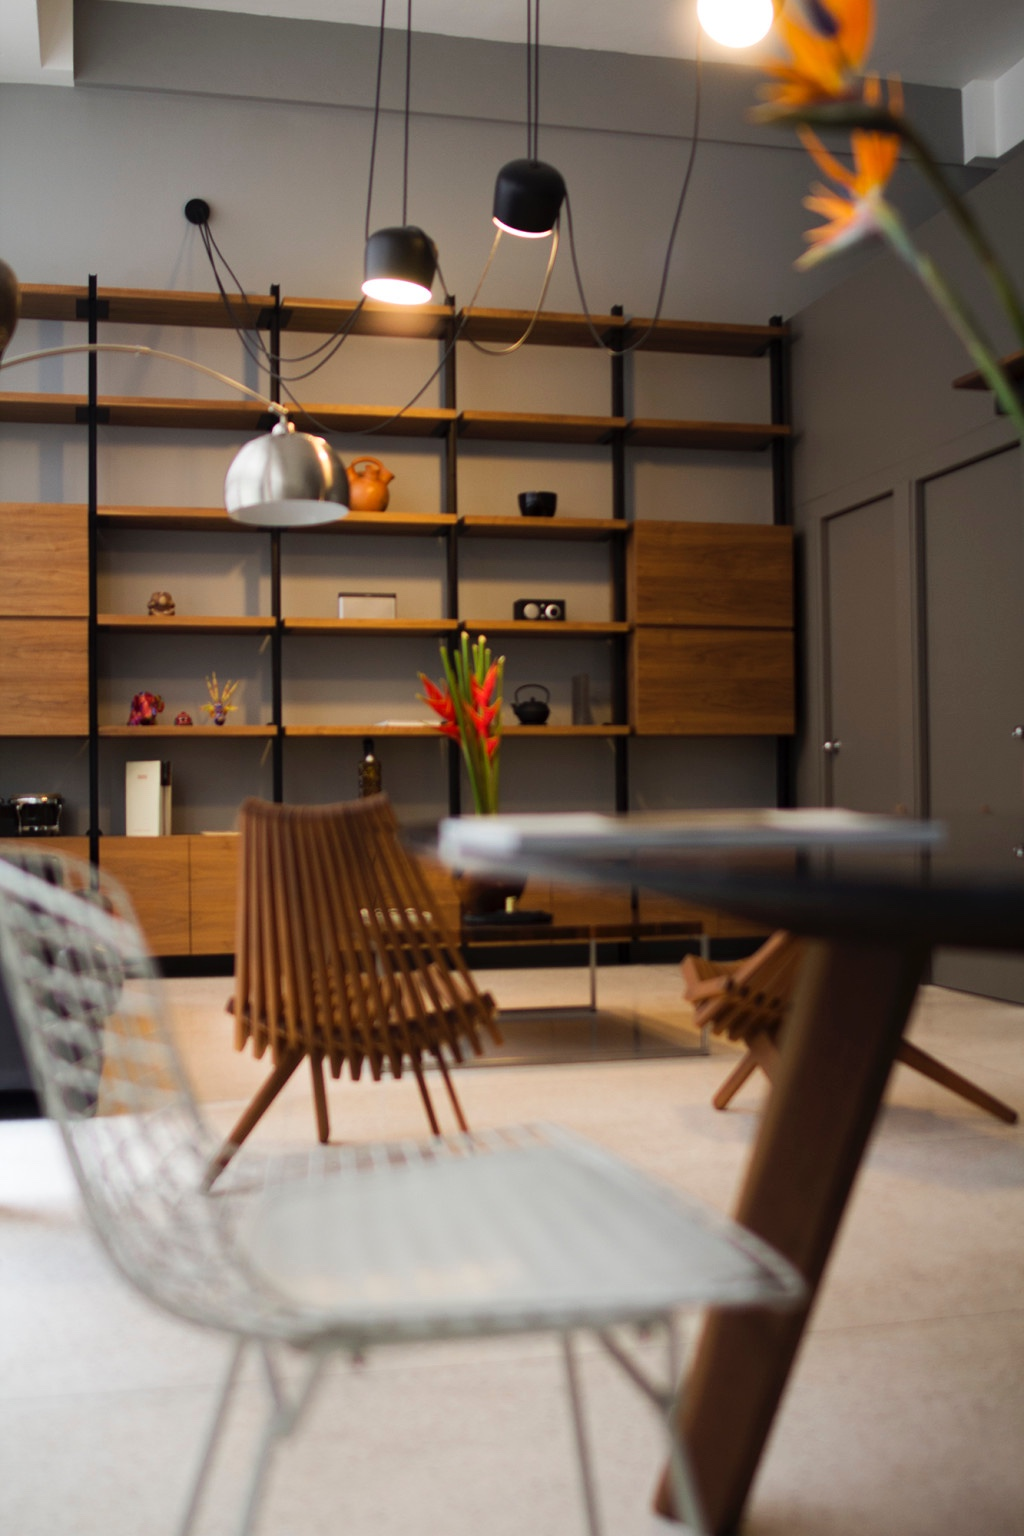 Mexico City: 3 Furniture Design Studios to Watch